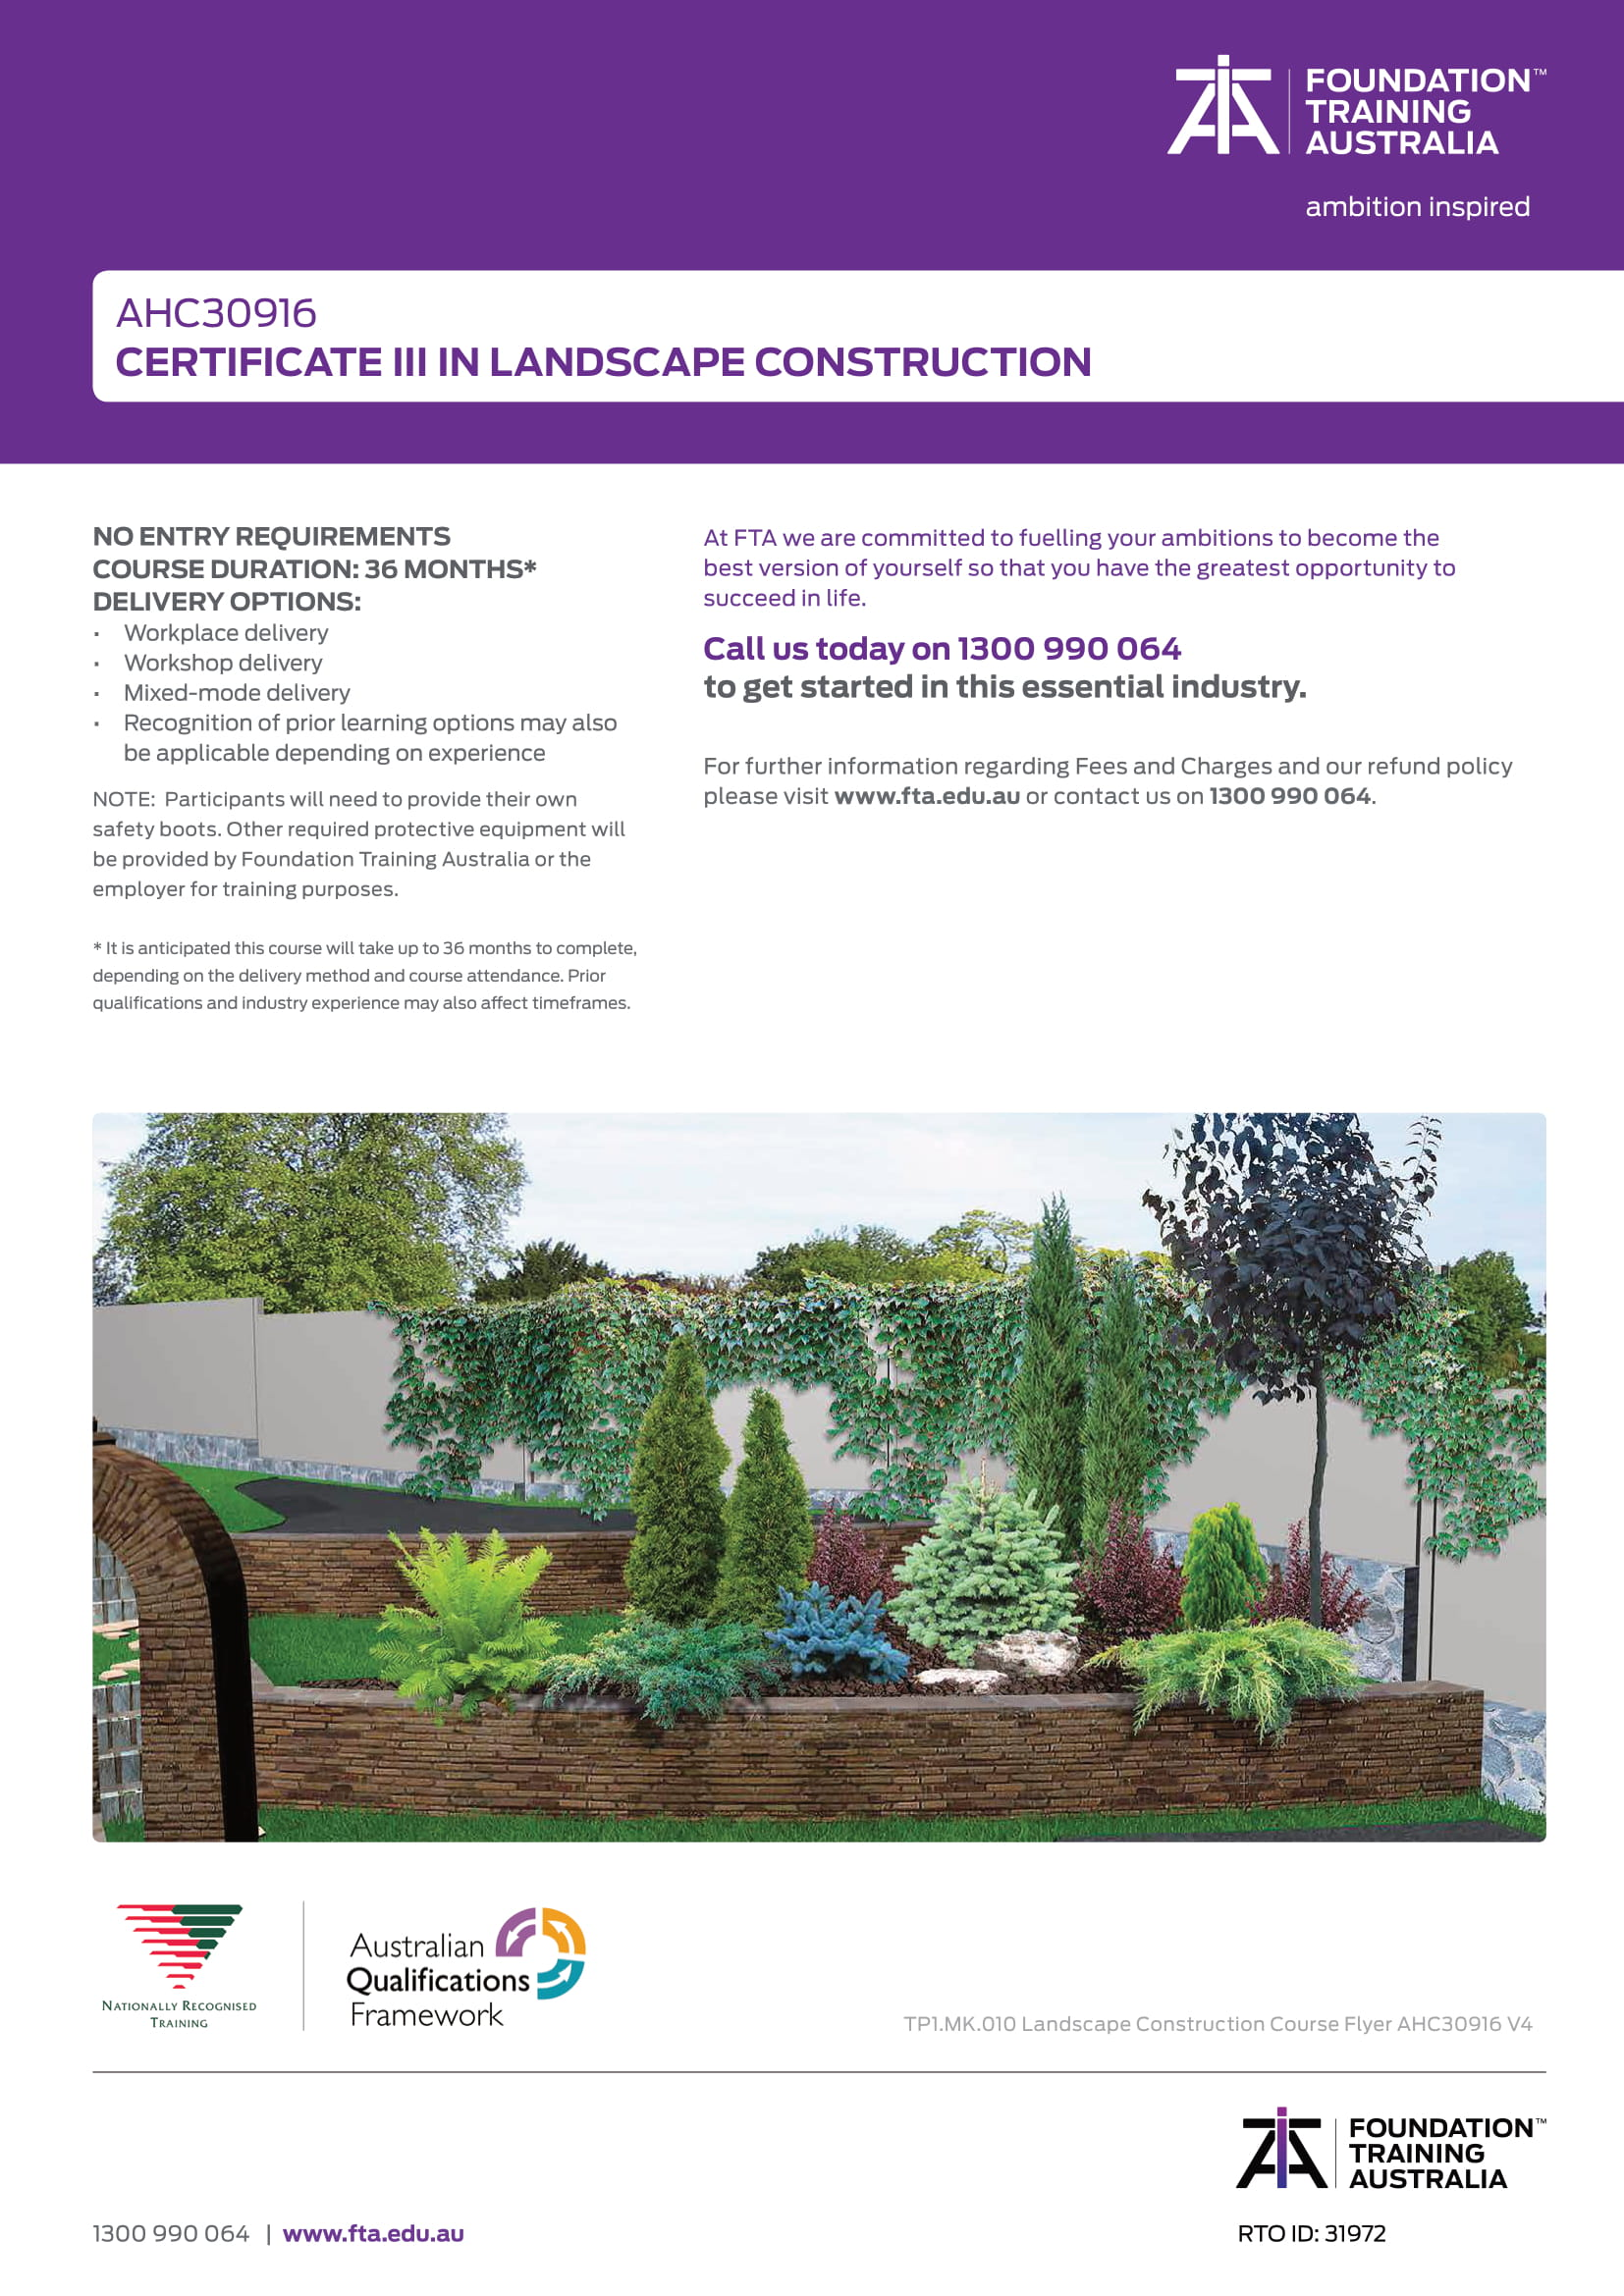 https://www.fta.edu.au/wp-content/uploads/2020/06/TP1.MK_.010-Certificate-III-Landscape-Construction-Course-Flyer-AHC30916-V4-DIGITAL-2.jpg